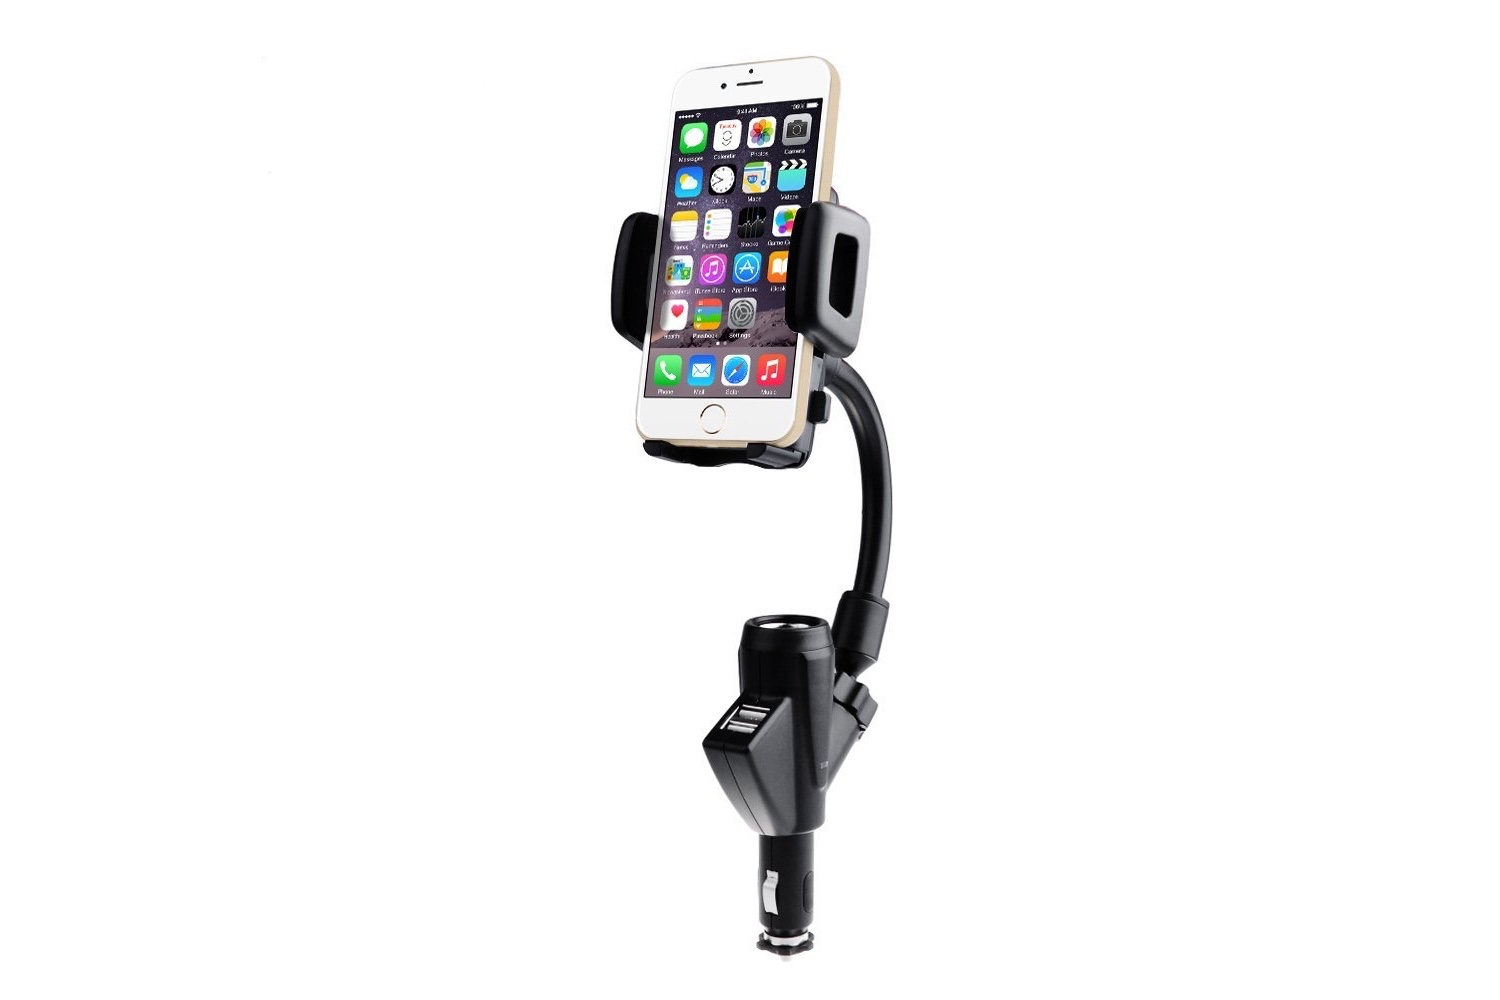 The Victsing Car Charger Mount Offers Multiple Charging Ports